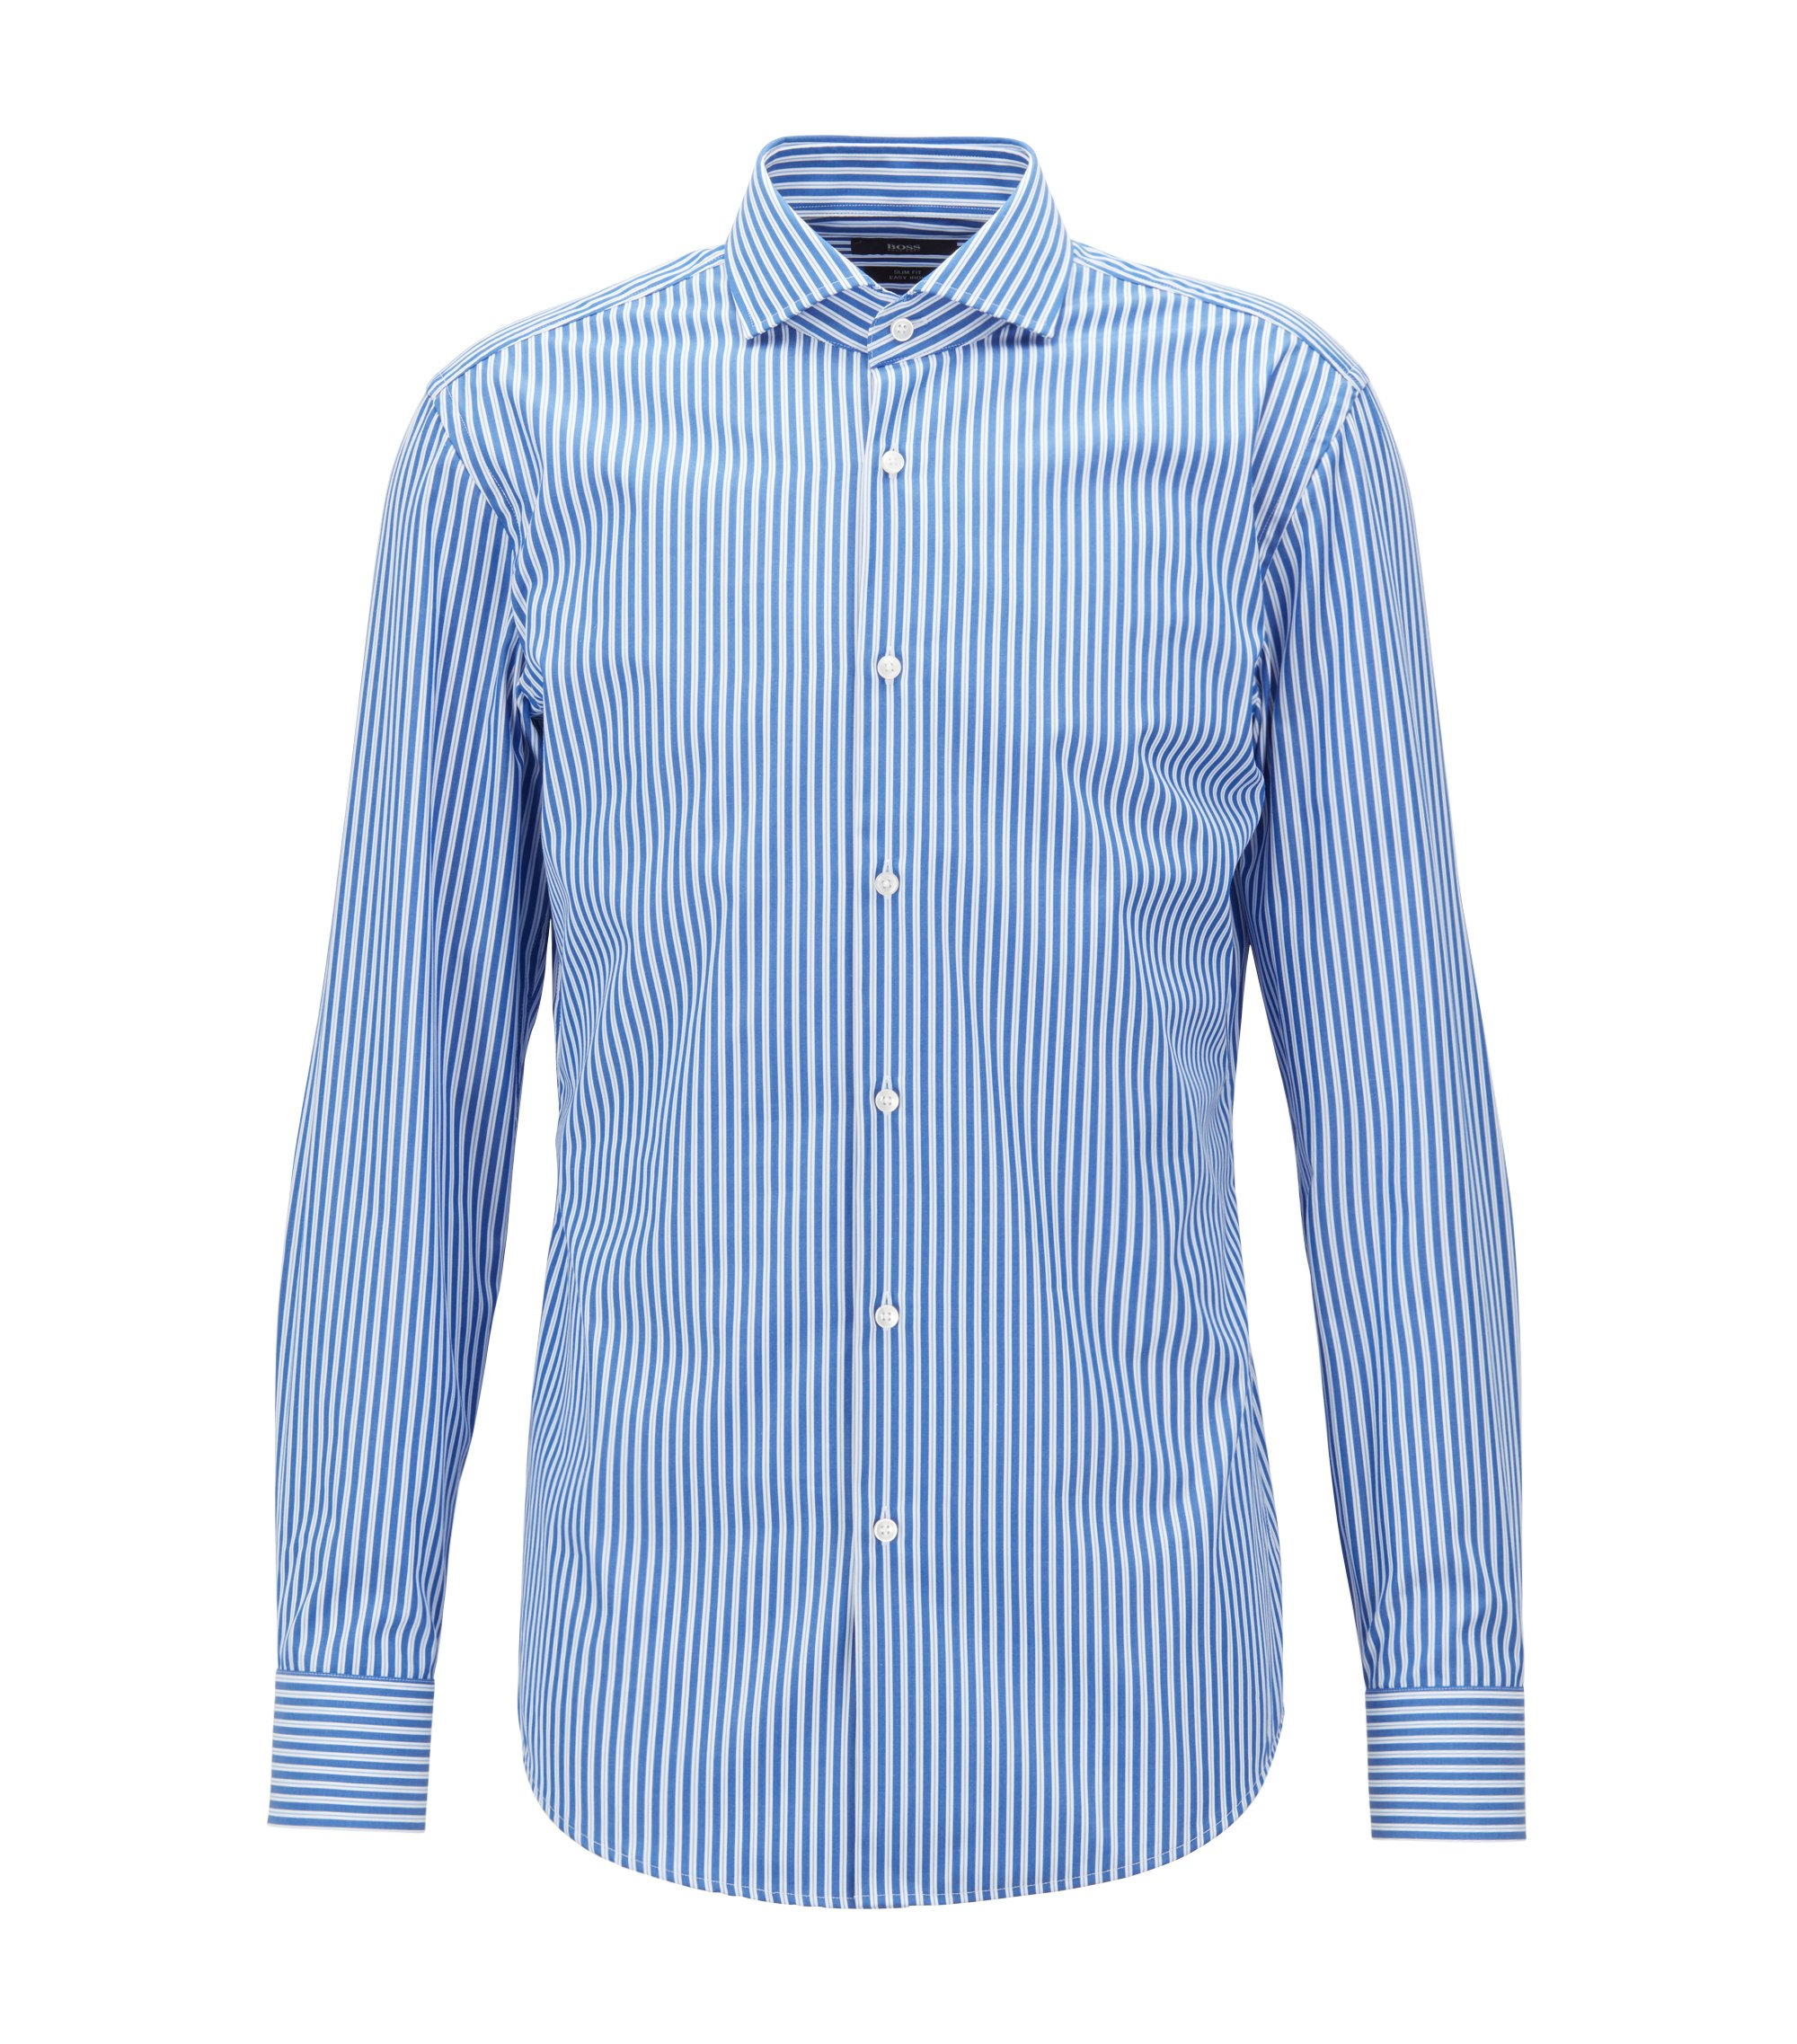 Camicia slim fit in popeline di cotone a righe facile da stirare, Blu